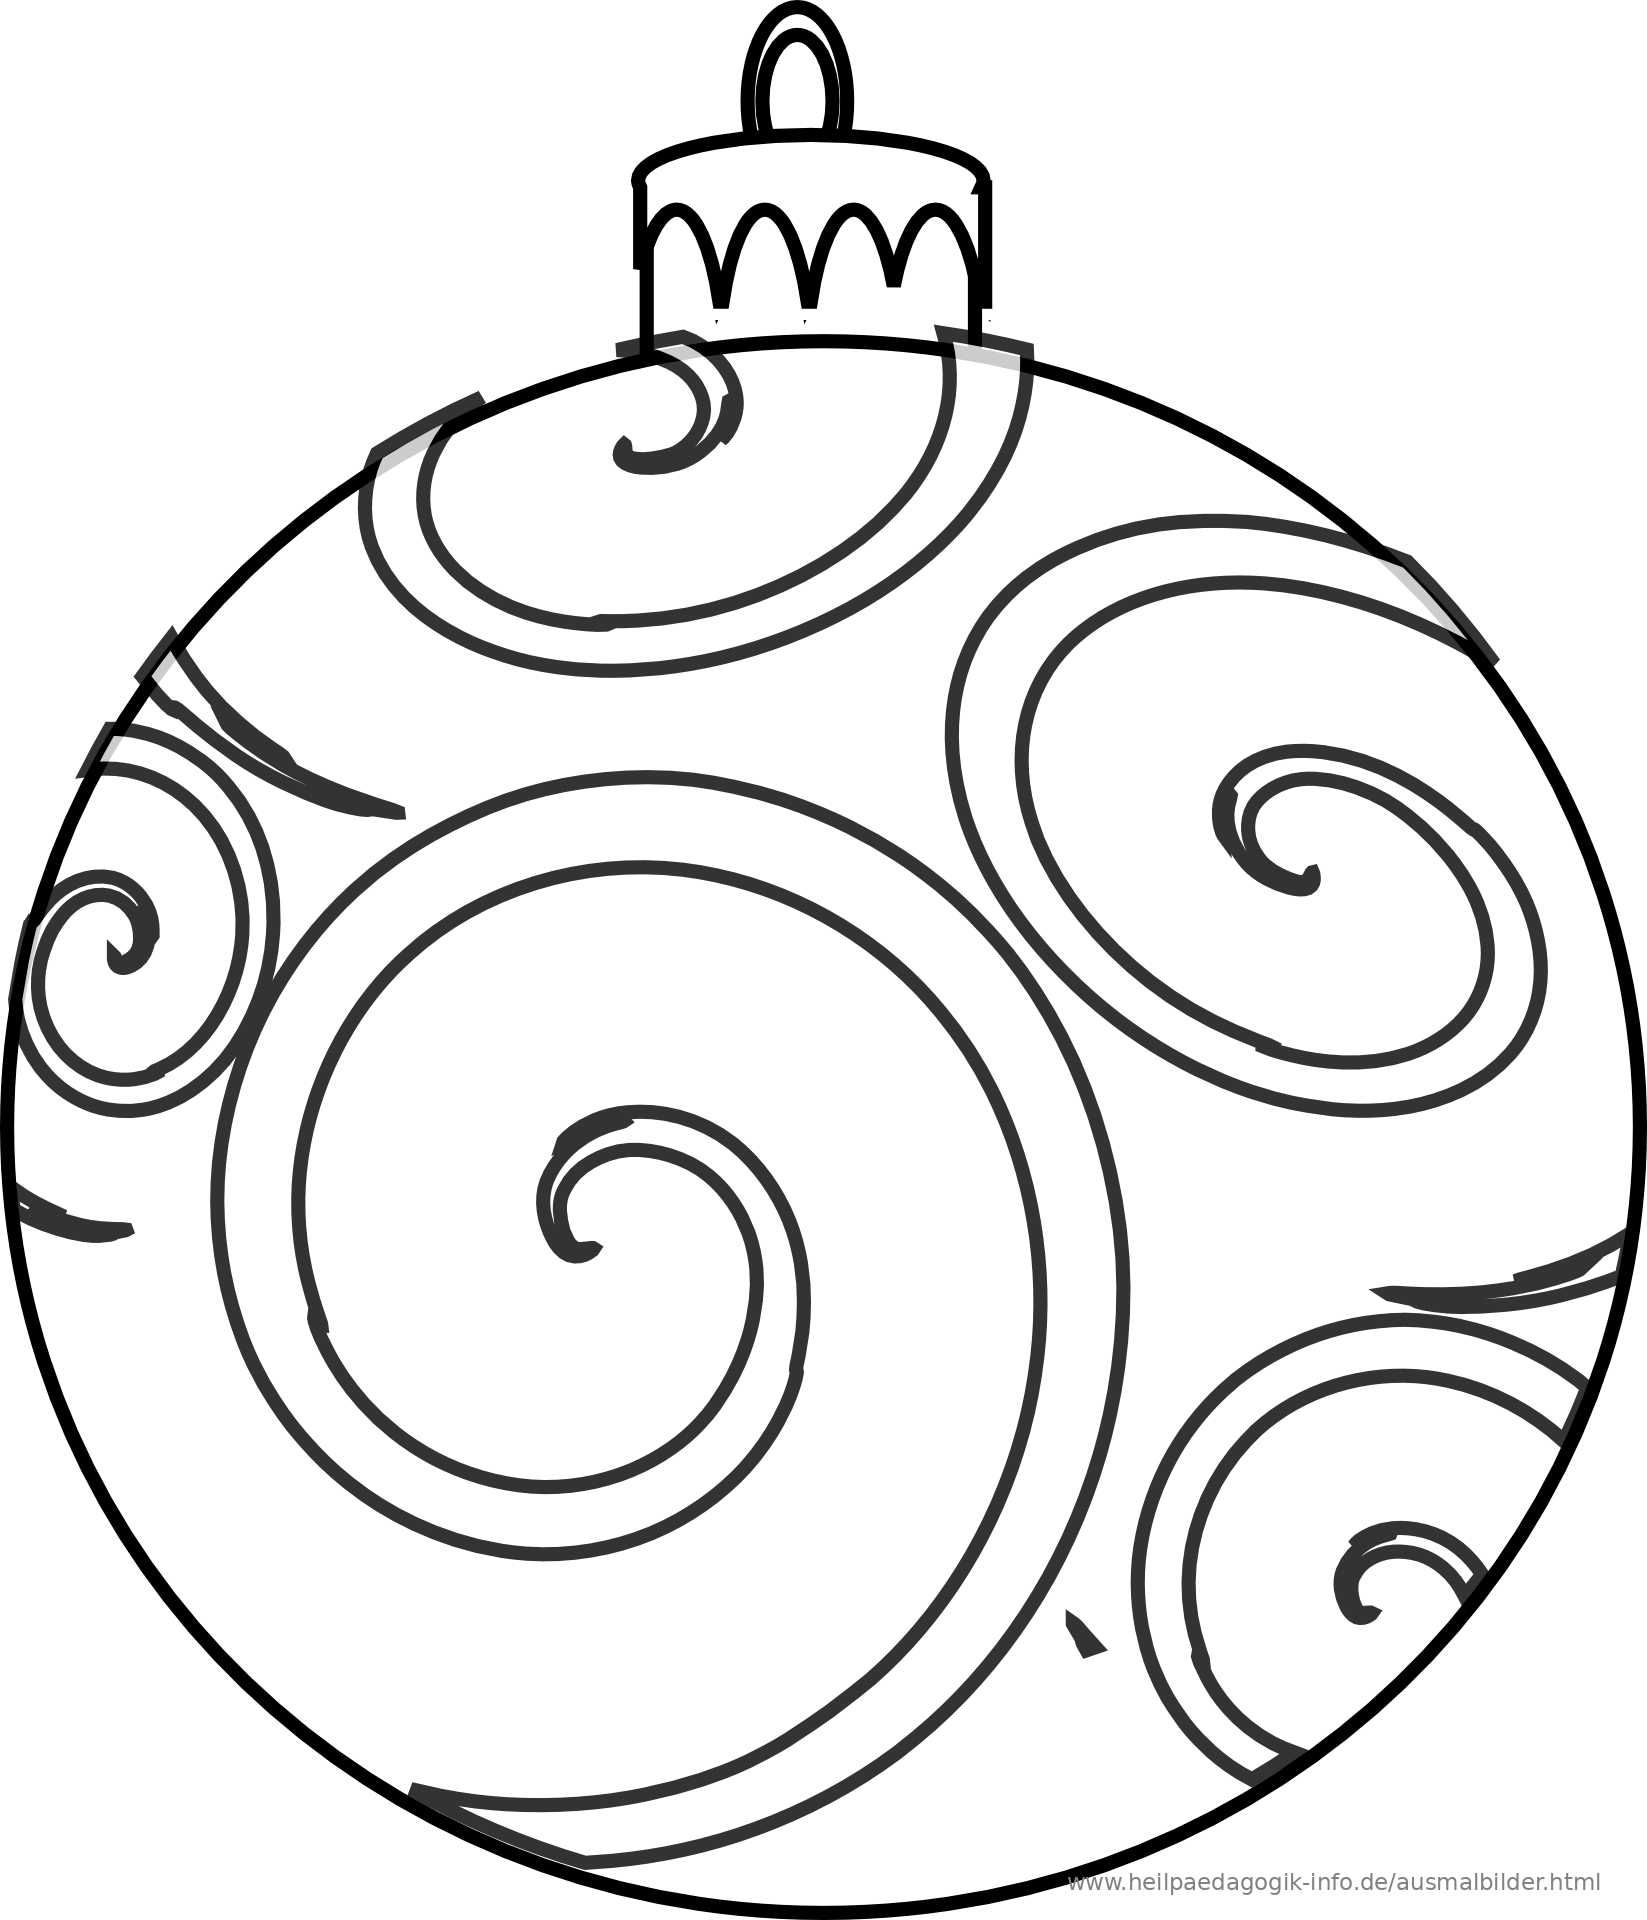 coloring pages christmas baubles clip - photo#14